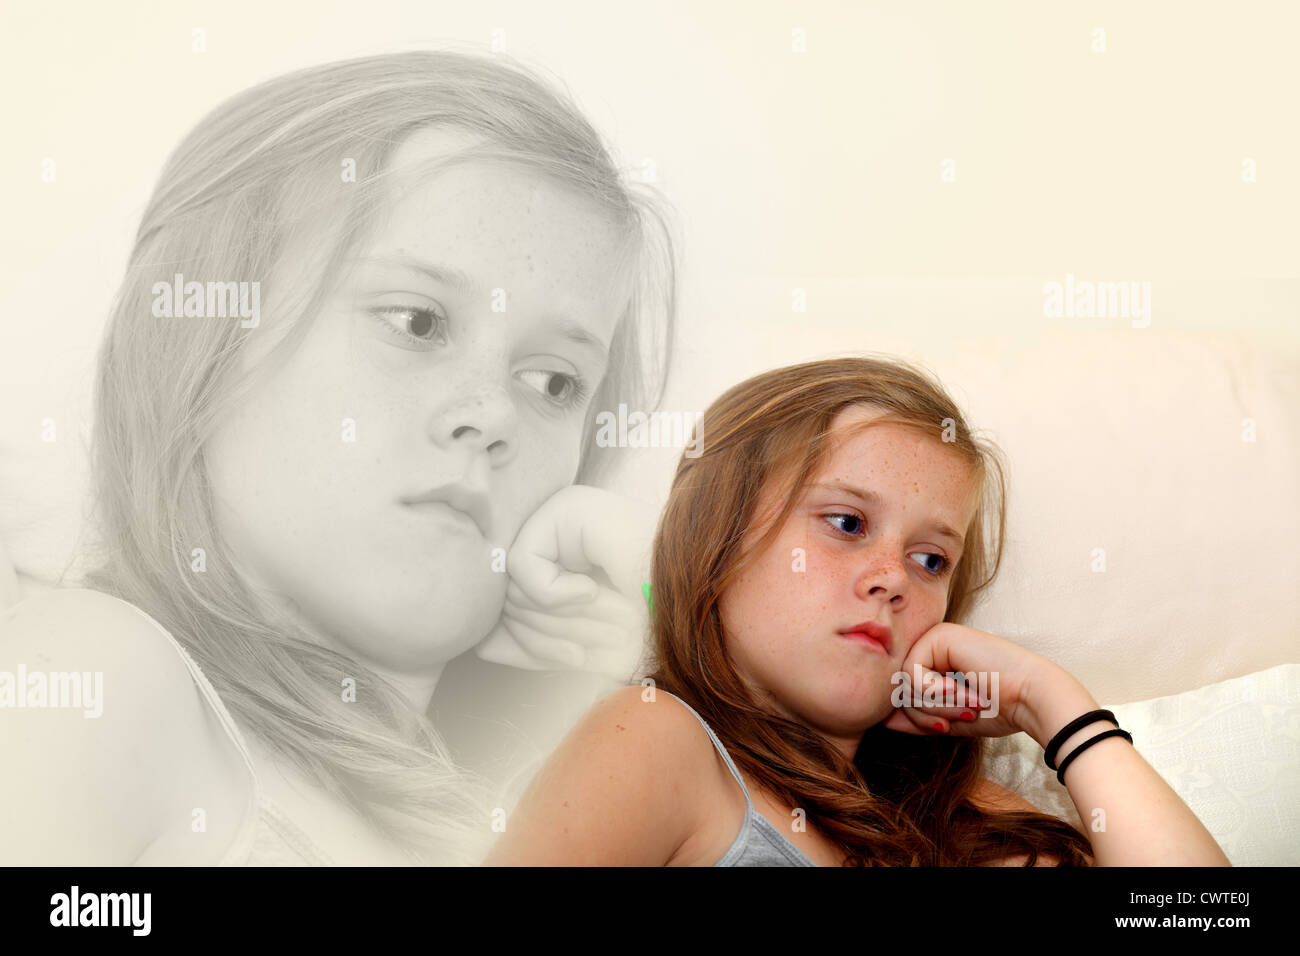 A color image of a 10 year old girl contemplating and looking sad, emphasized by a mono second image behind - Stock Image